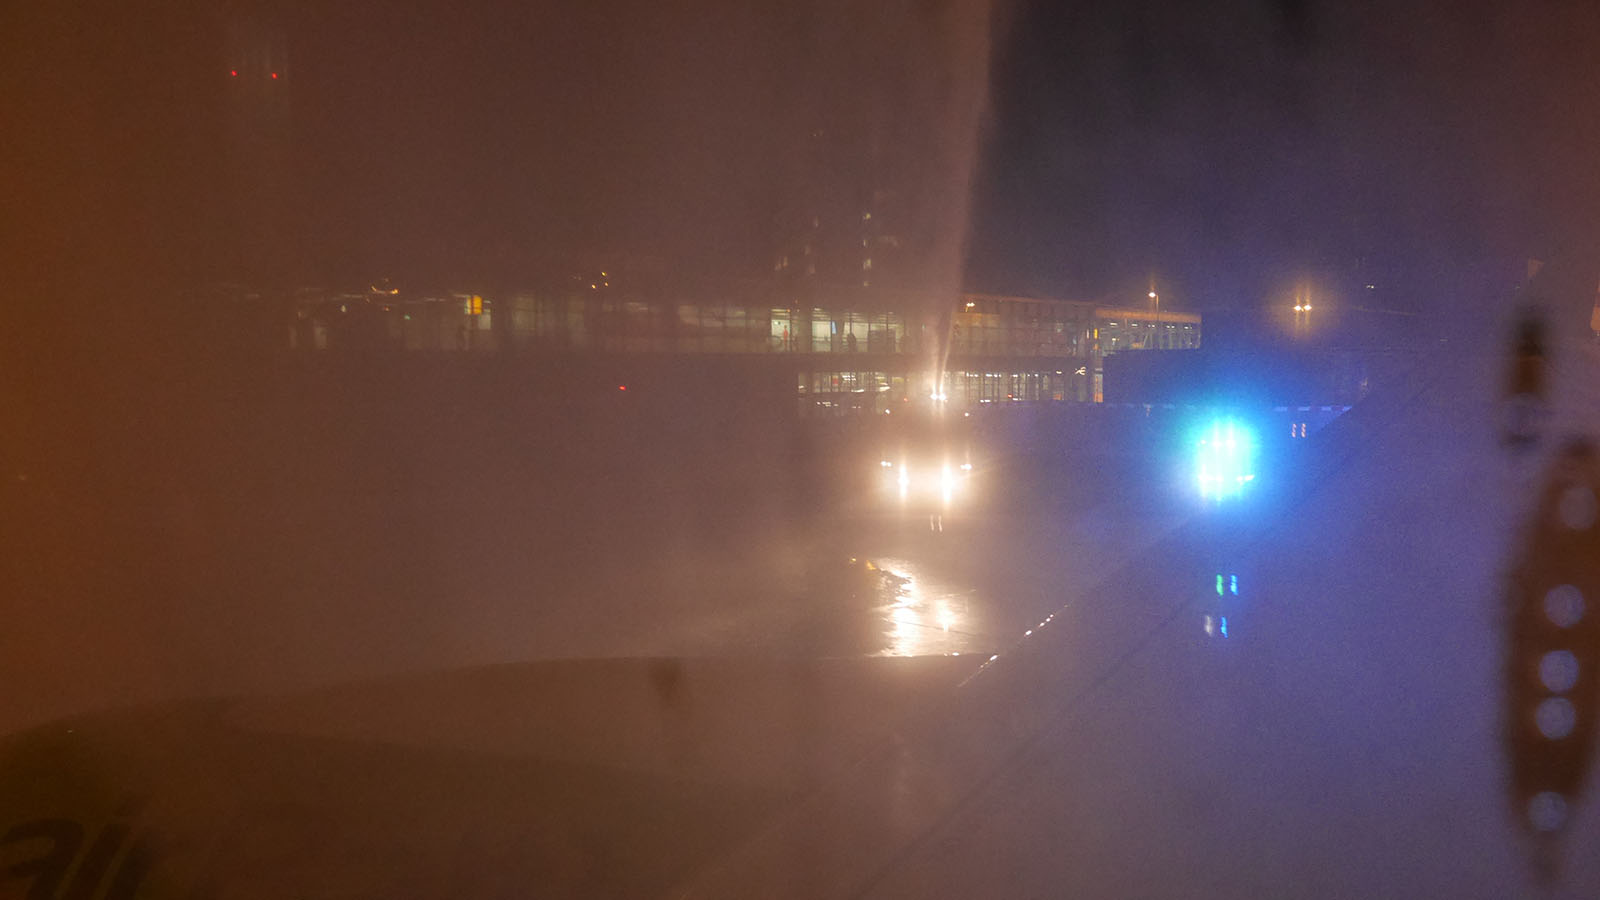 Got the water cannon salute after landing in Amsterdam